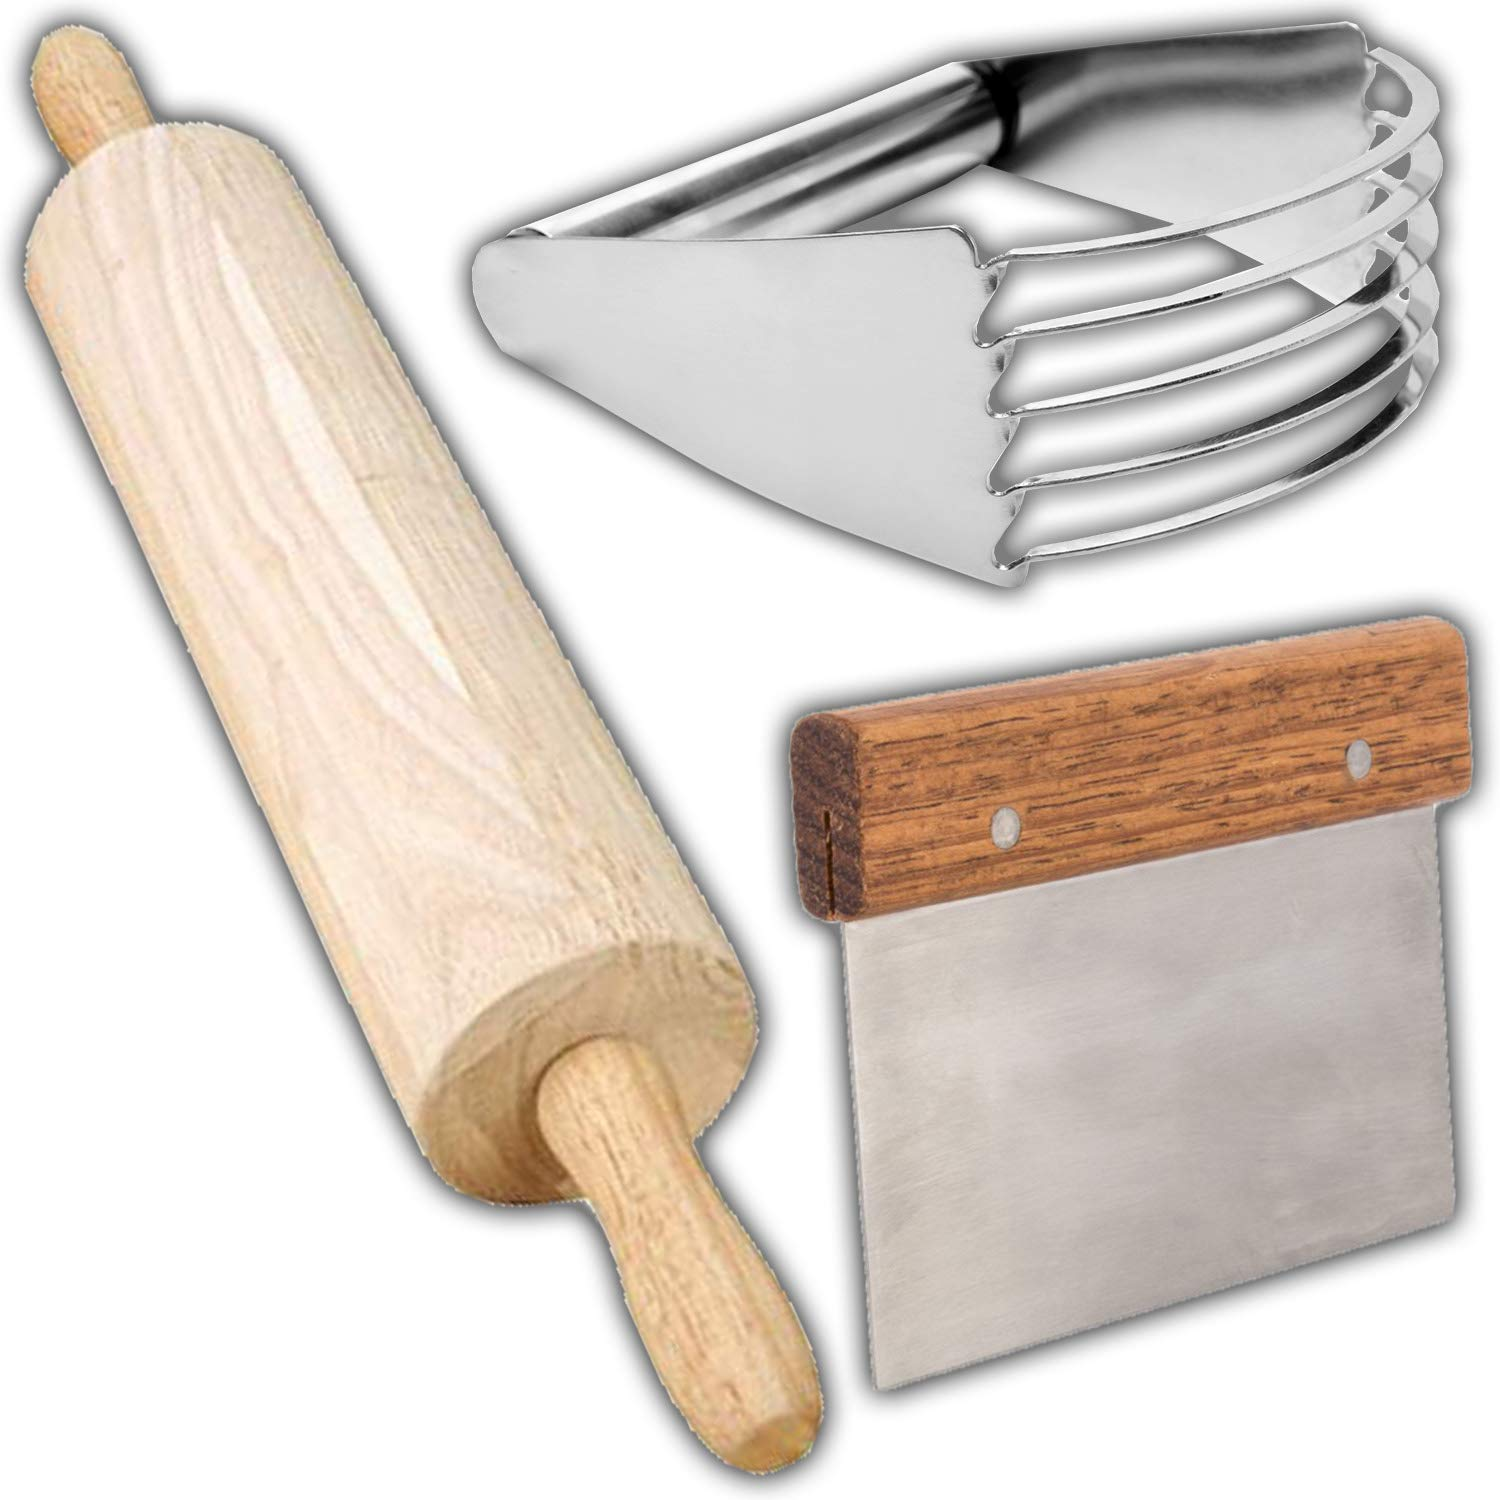 Pastry Baking Set - 13'' Wooden Rolling Pin, Dough Scraper and Blender Stainless Steel, Professional Quality Biscuit Blender, pie cutter, Heavy Duty Kitchen Baking Tools, for commercial and home use.